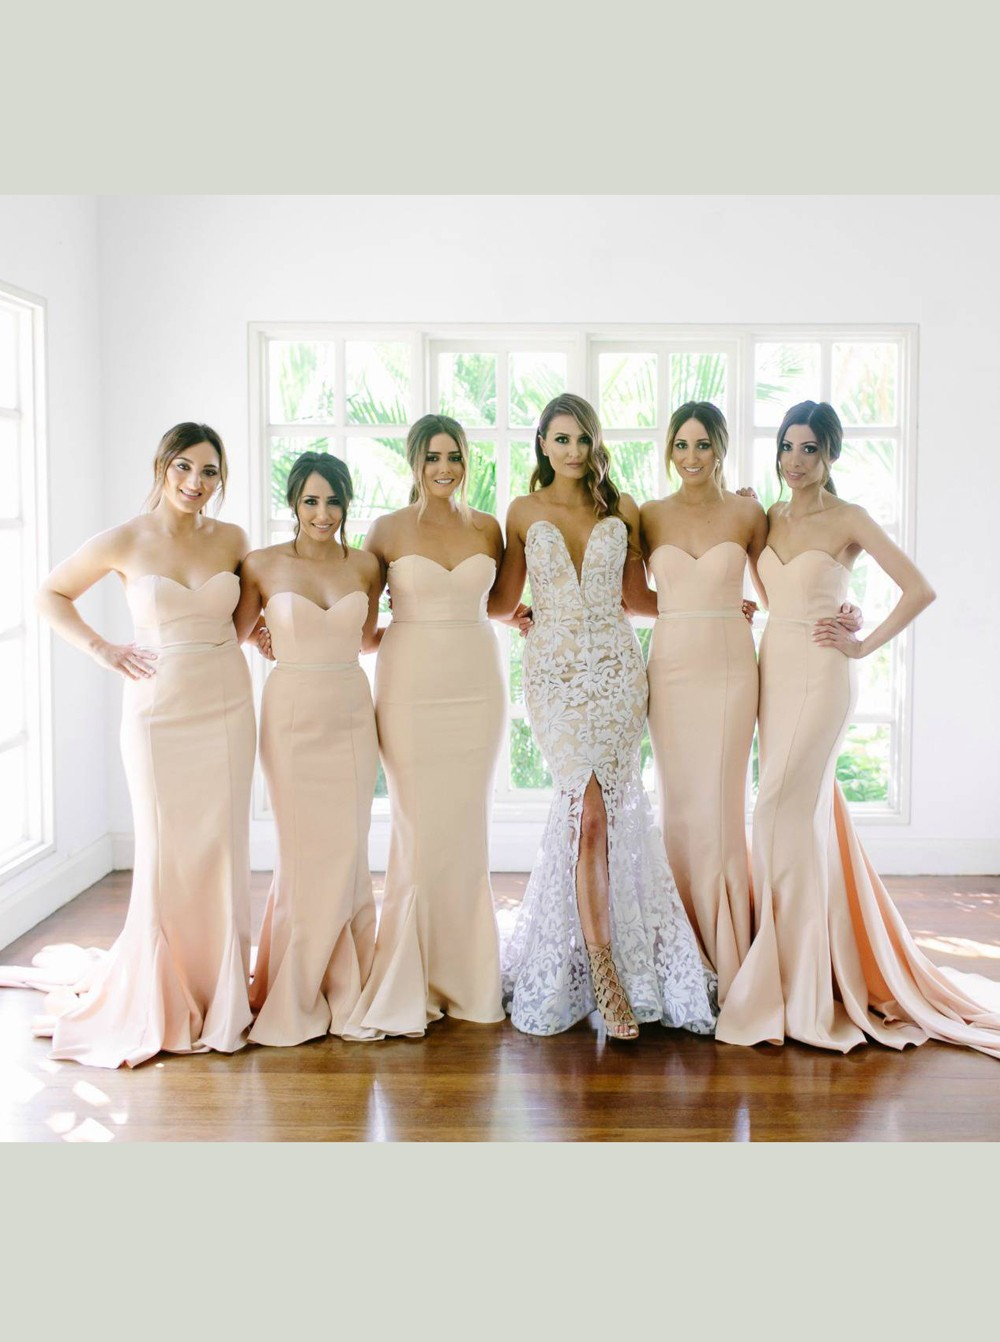 Bridesmaid dressesplus size bridesmaid dresseschampagne bridesmaid bridesmaid dressesplus size bridesmaid dresseschampagne bridesmaid dress mermaid bridesmaid dress ombrellifo Image collections